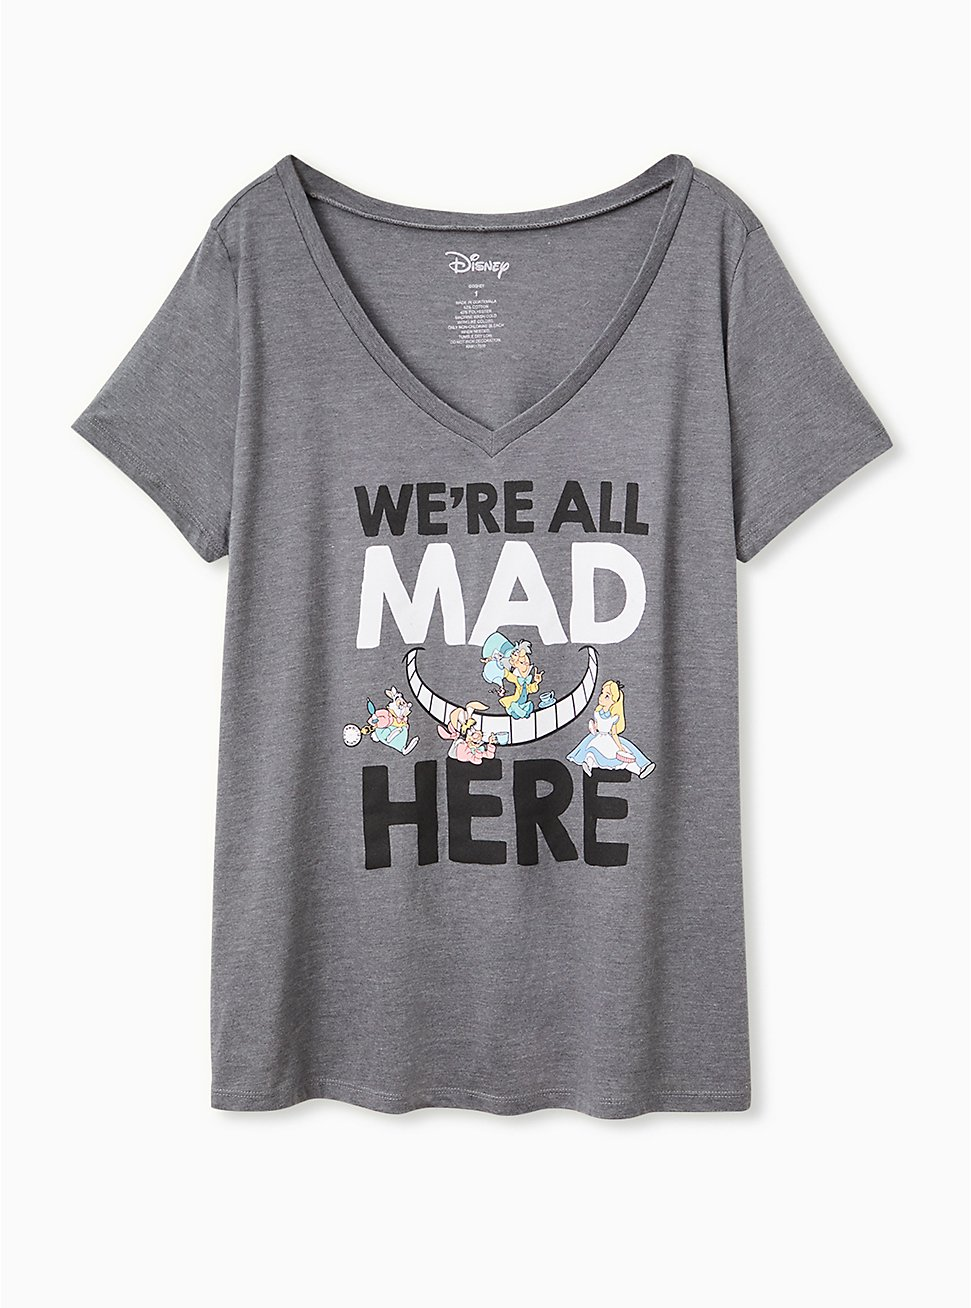 Plus Size Disney Alice In Wonderland We're All Mad Here Charcoal Grey Slim Fit Tee, CHARCOAL, hi-res